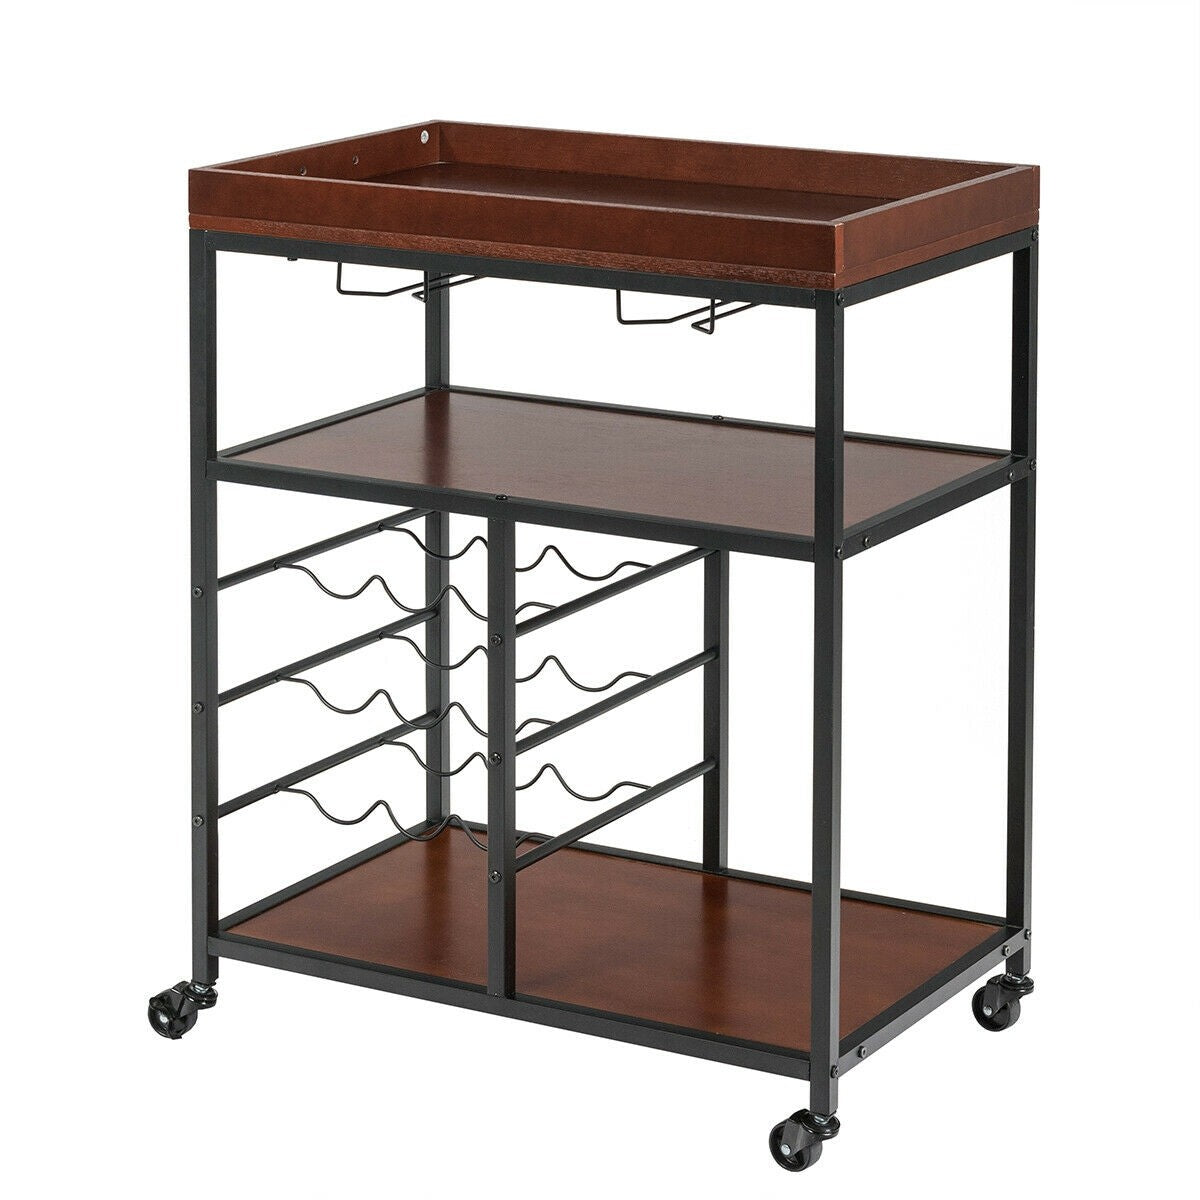 3 Tier Bar Serving Cart with Wine Rack